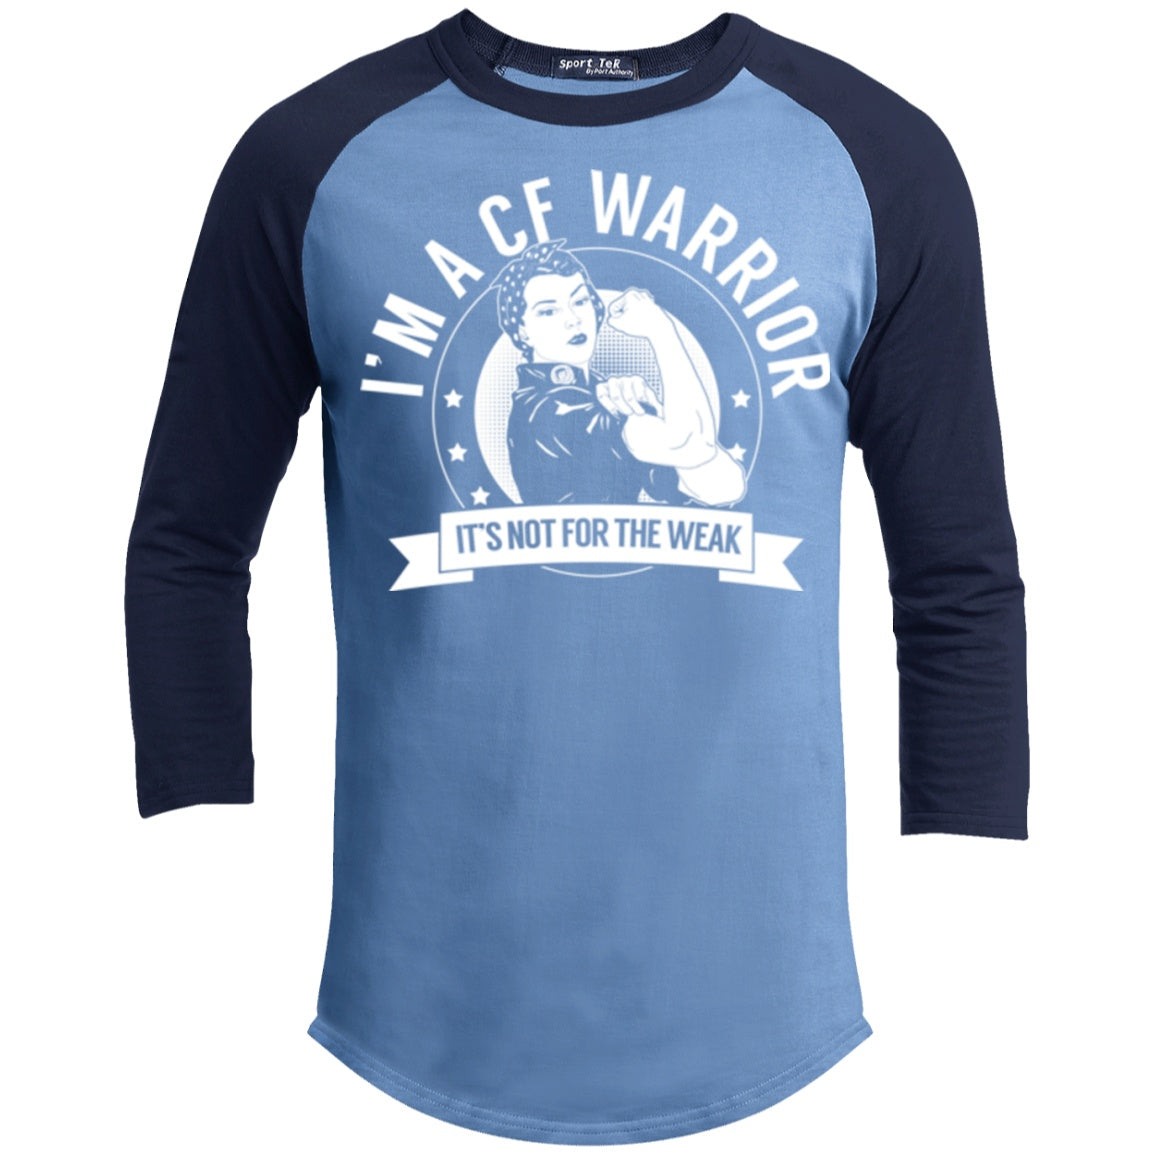 T-Shirts - Cystic Fibrosis - CF Warrior Not For The Weak Baseball Shirt